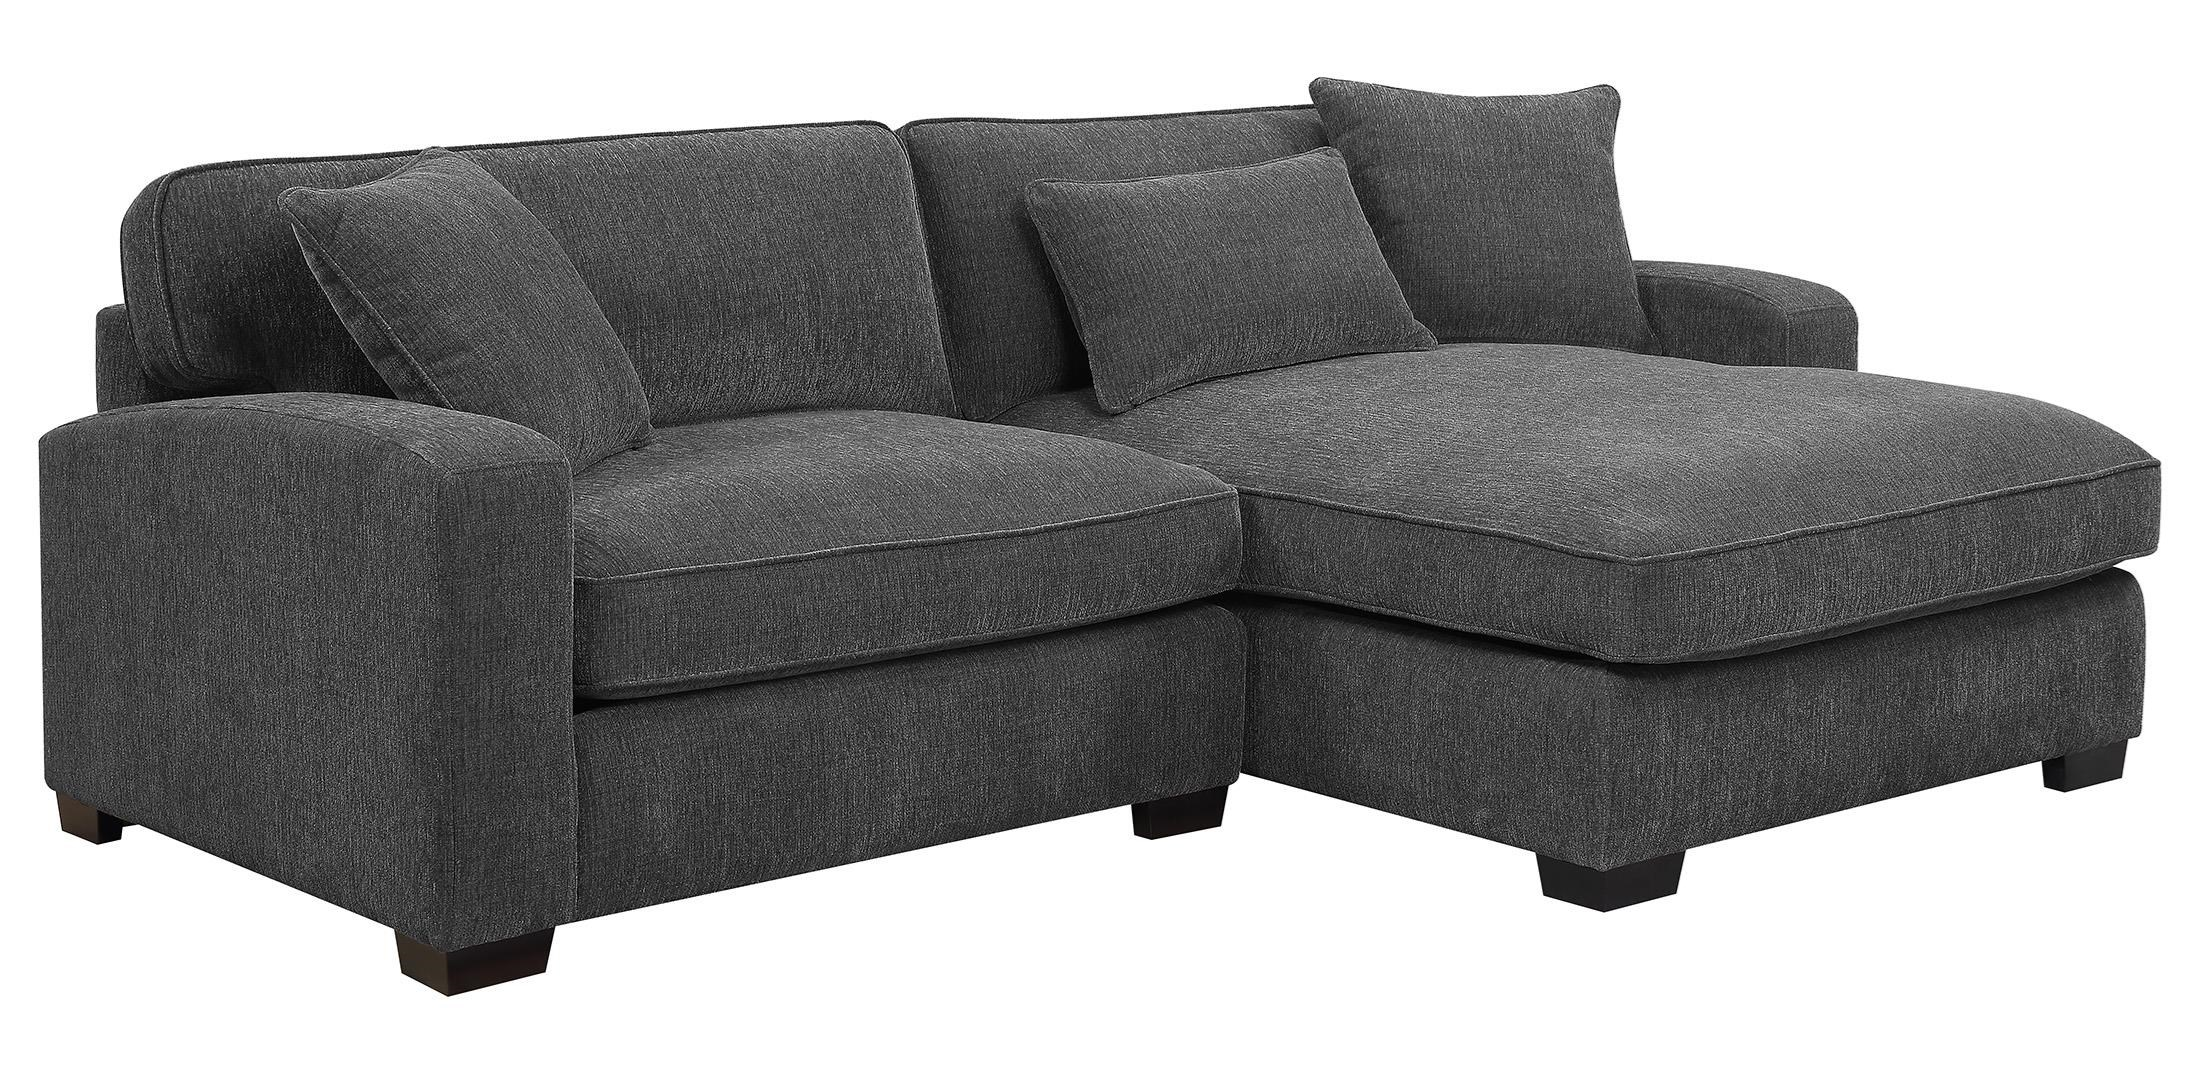 Charcoal 2 Piece Sectional Sofa